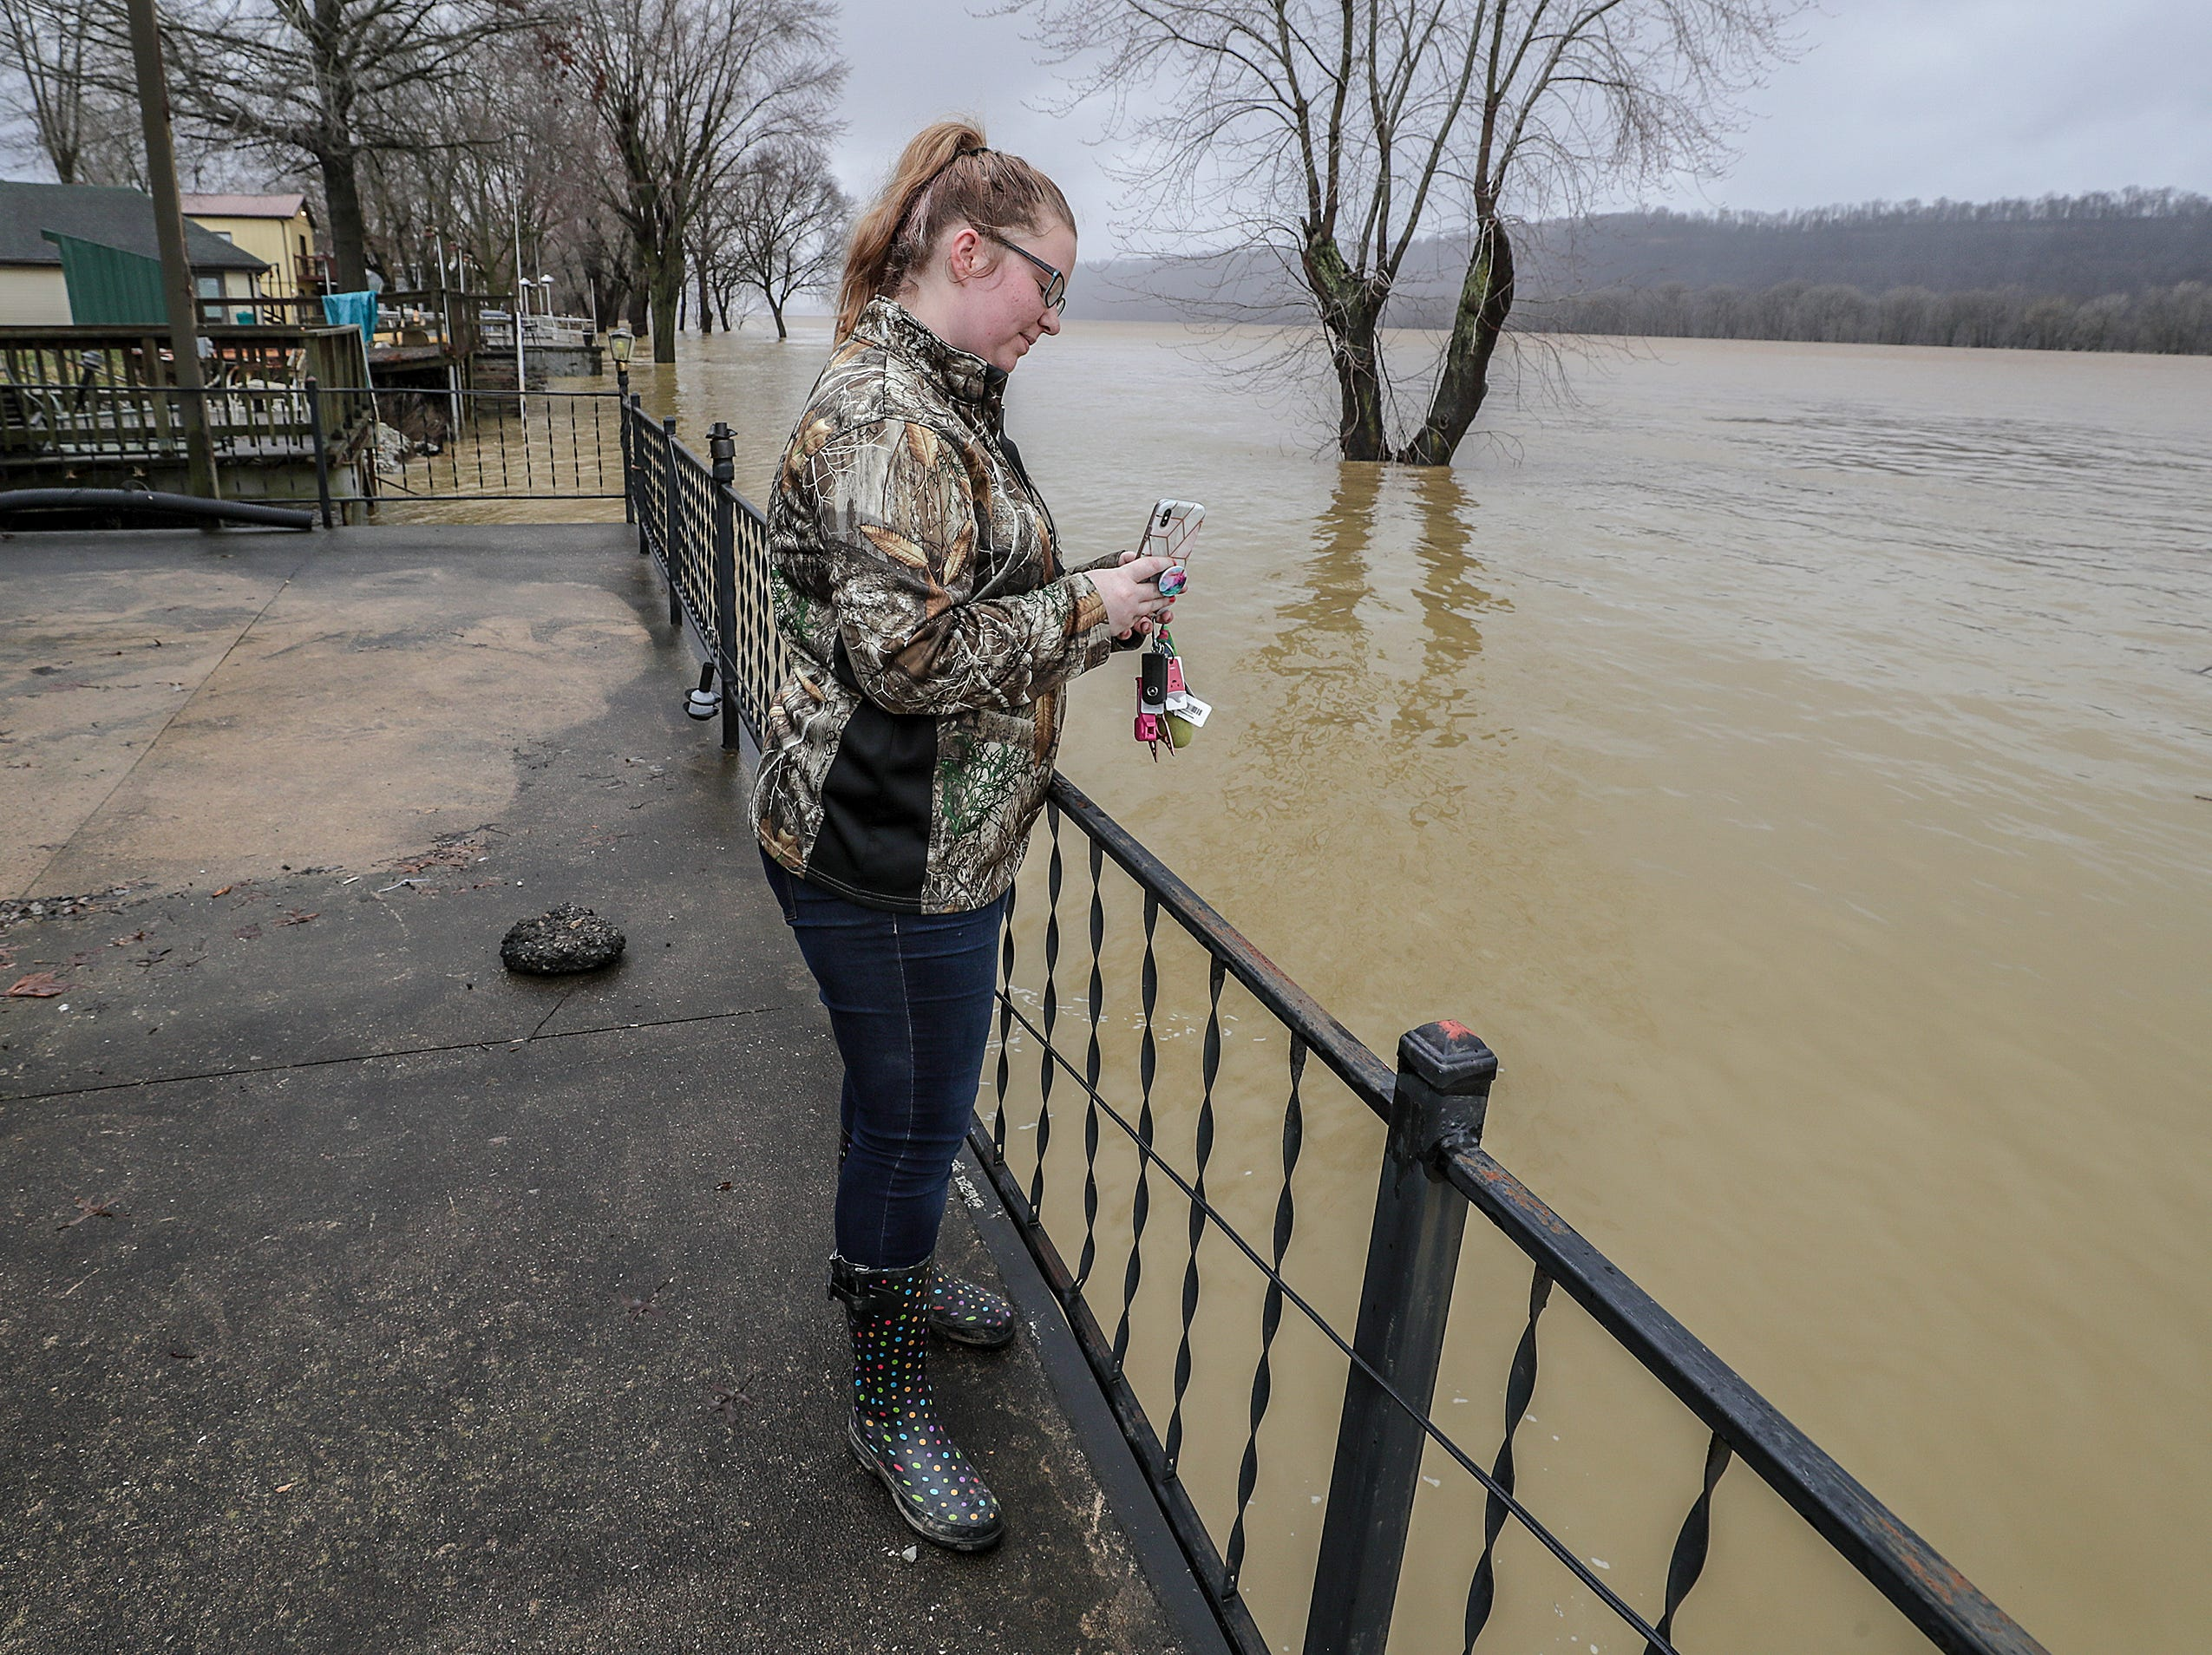 West Point resident Stephanie Hazelwood takes photos of the Ohio River that is forcing many in West Point out of their homes.  There is usually plenty of ground between the river and her back deck.February 12, 2019